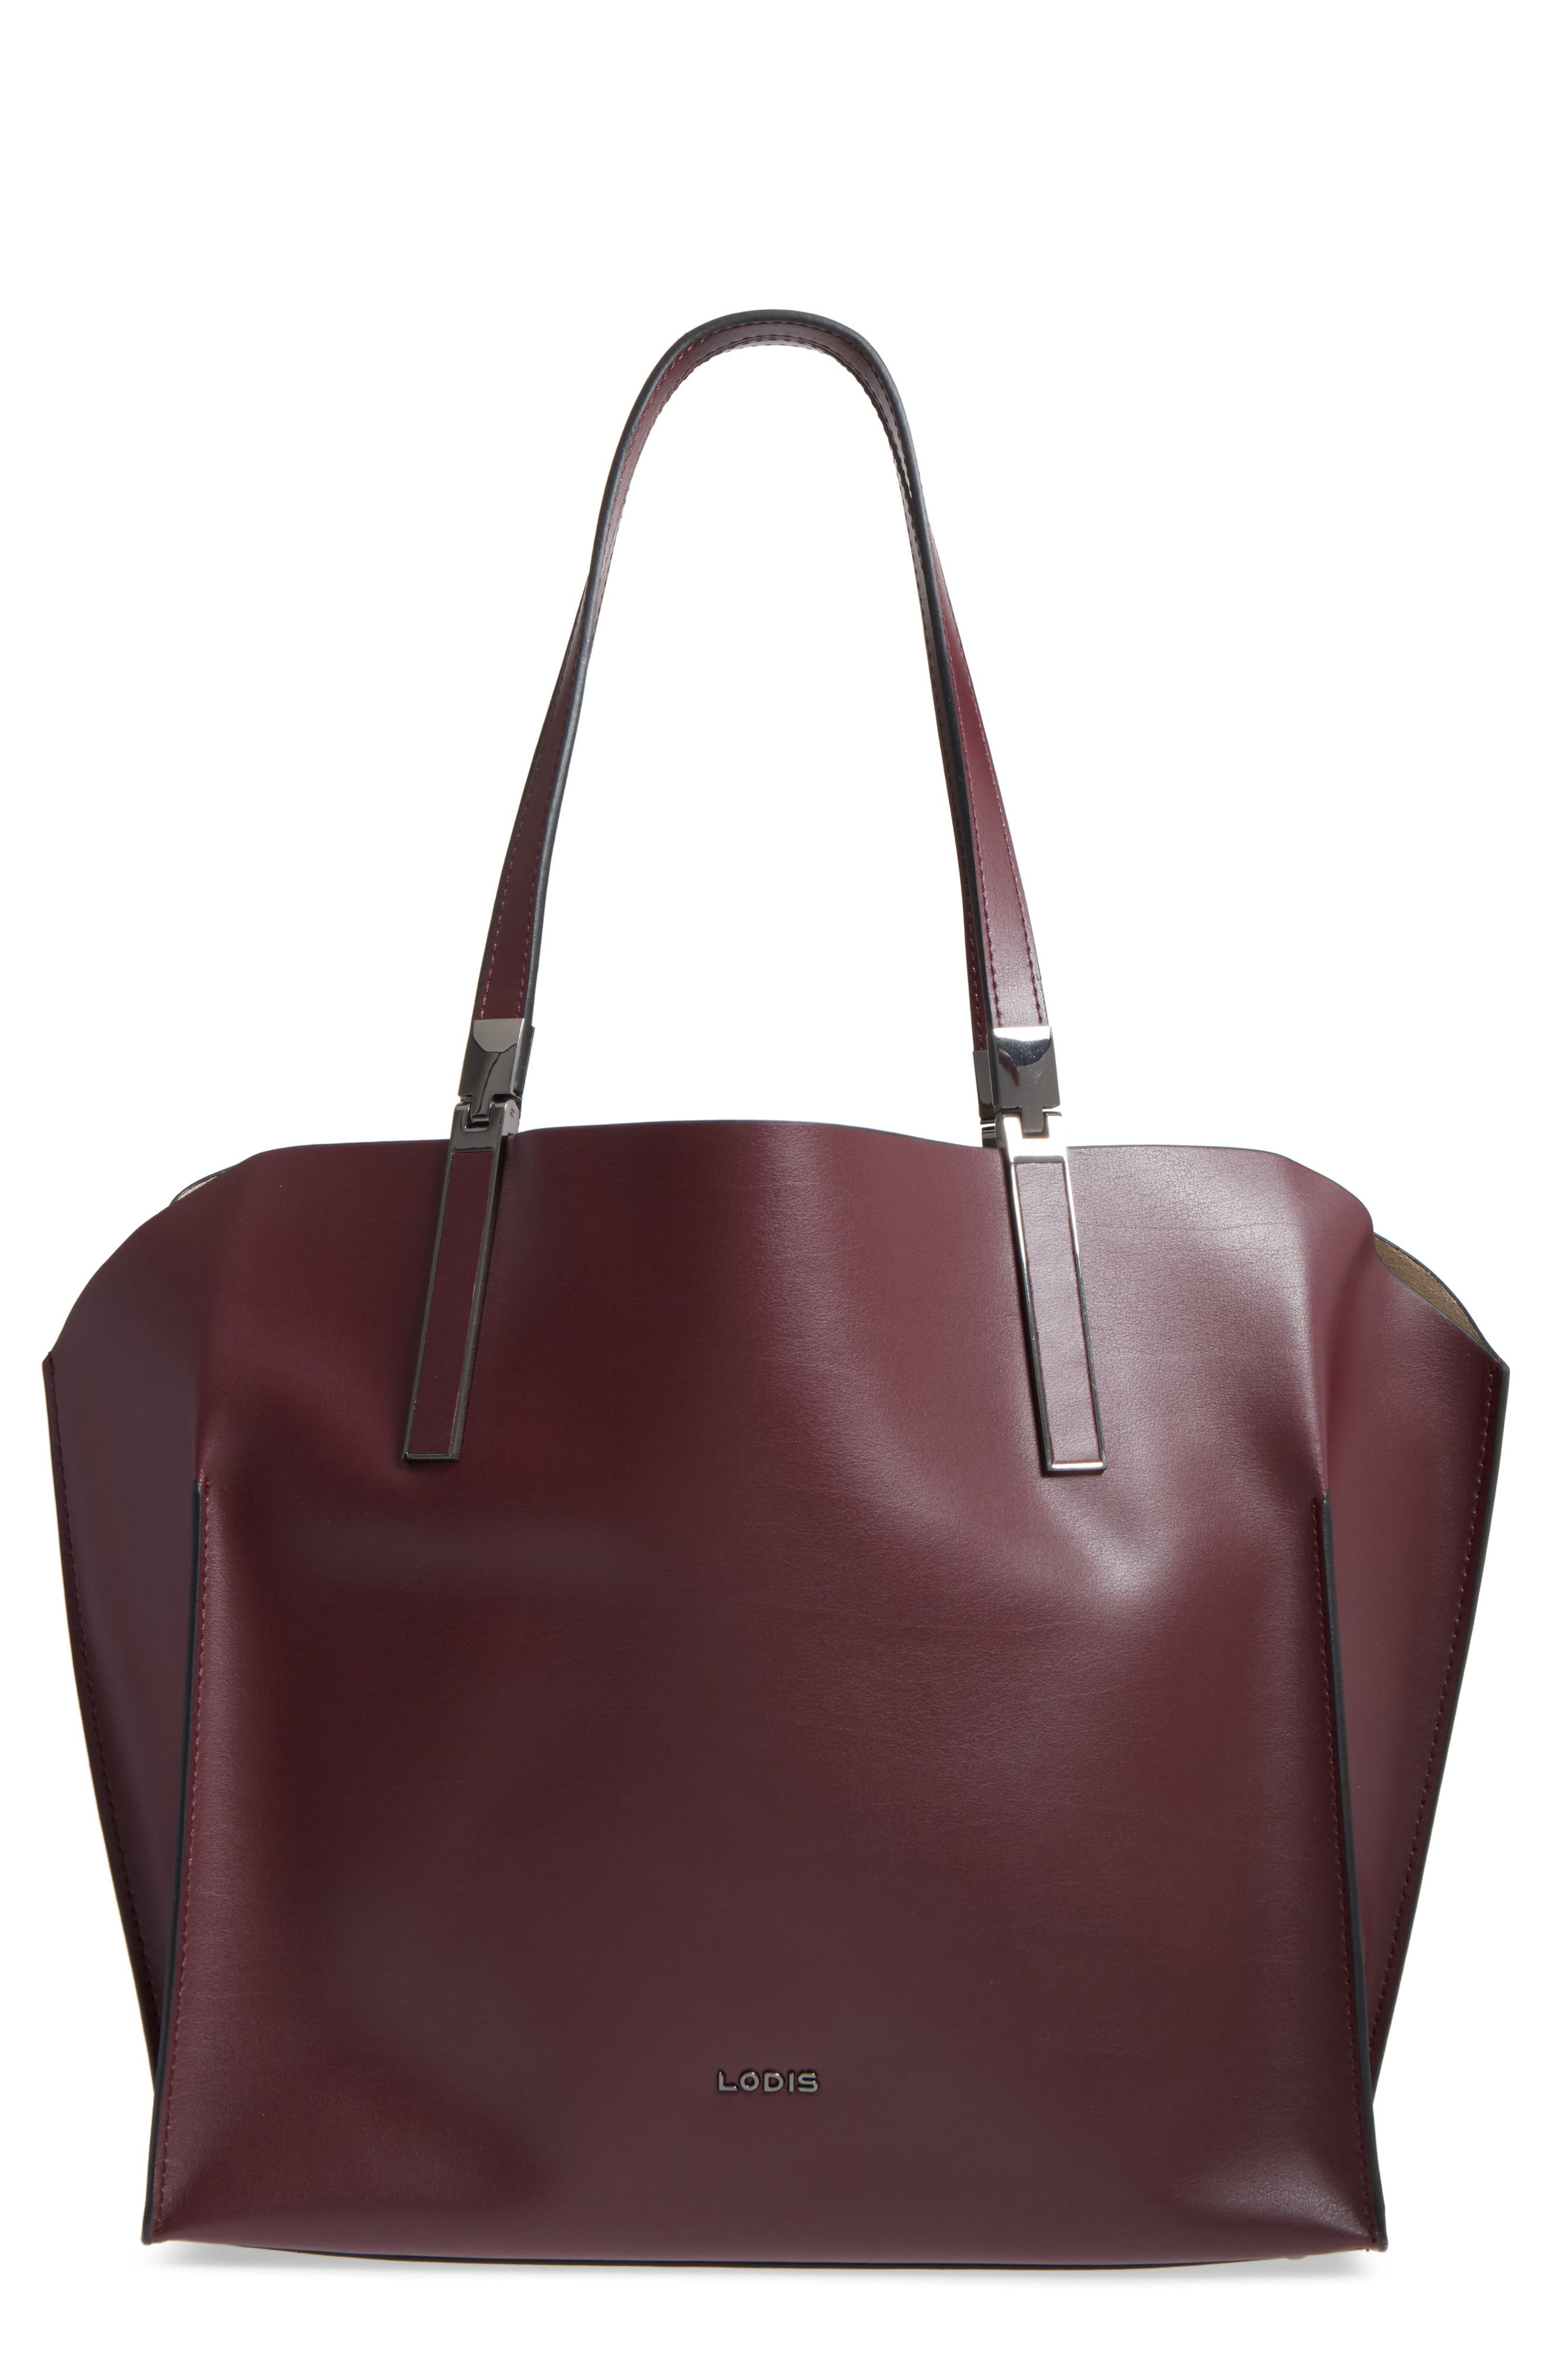 Lodis Silicon Valley Collection Under Lock & Key - Anita RFID East/West Leather Satchel